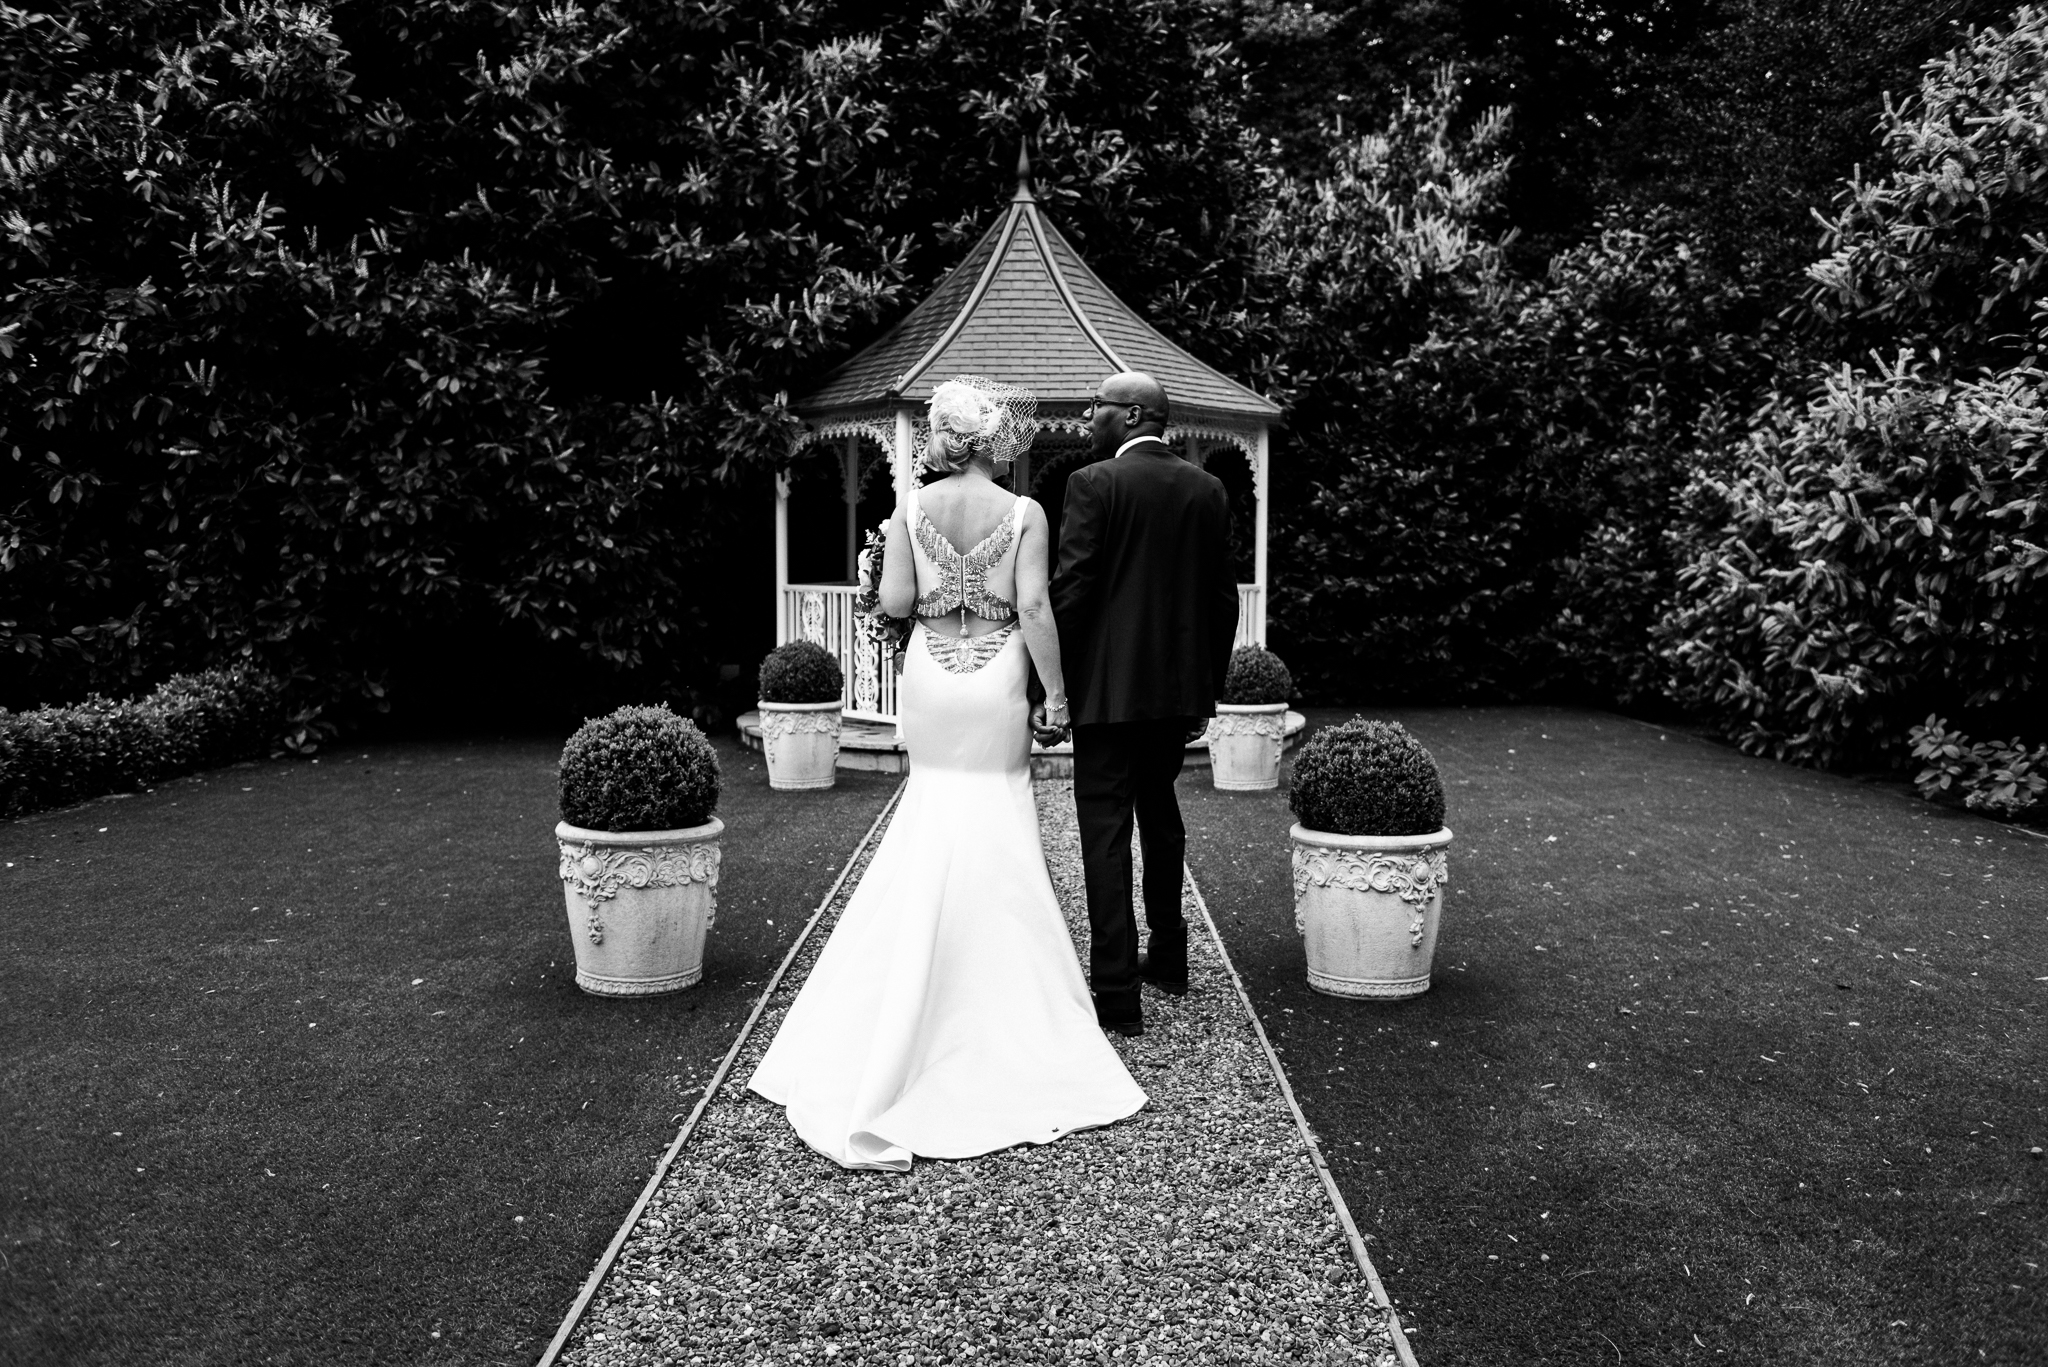 Stylish Easter Wedding at Pendrell Hall Country House Wedding Venue Staffordshire - Jenny Harper-33.jpg